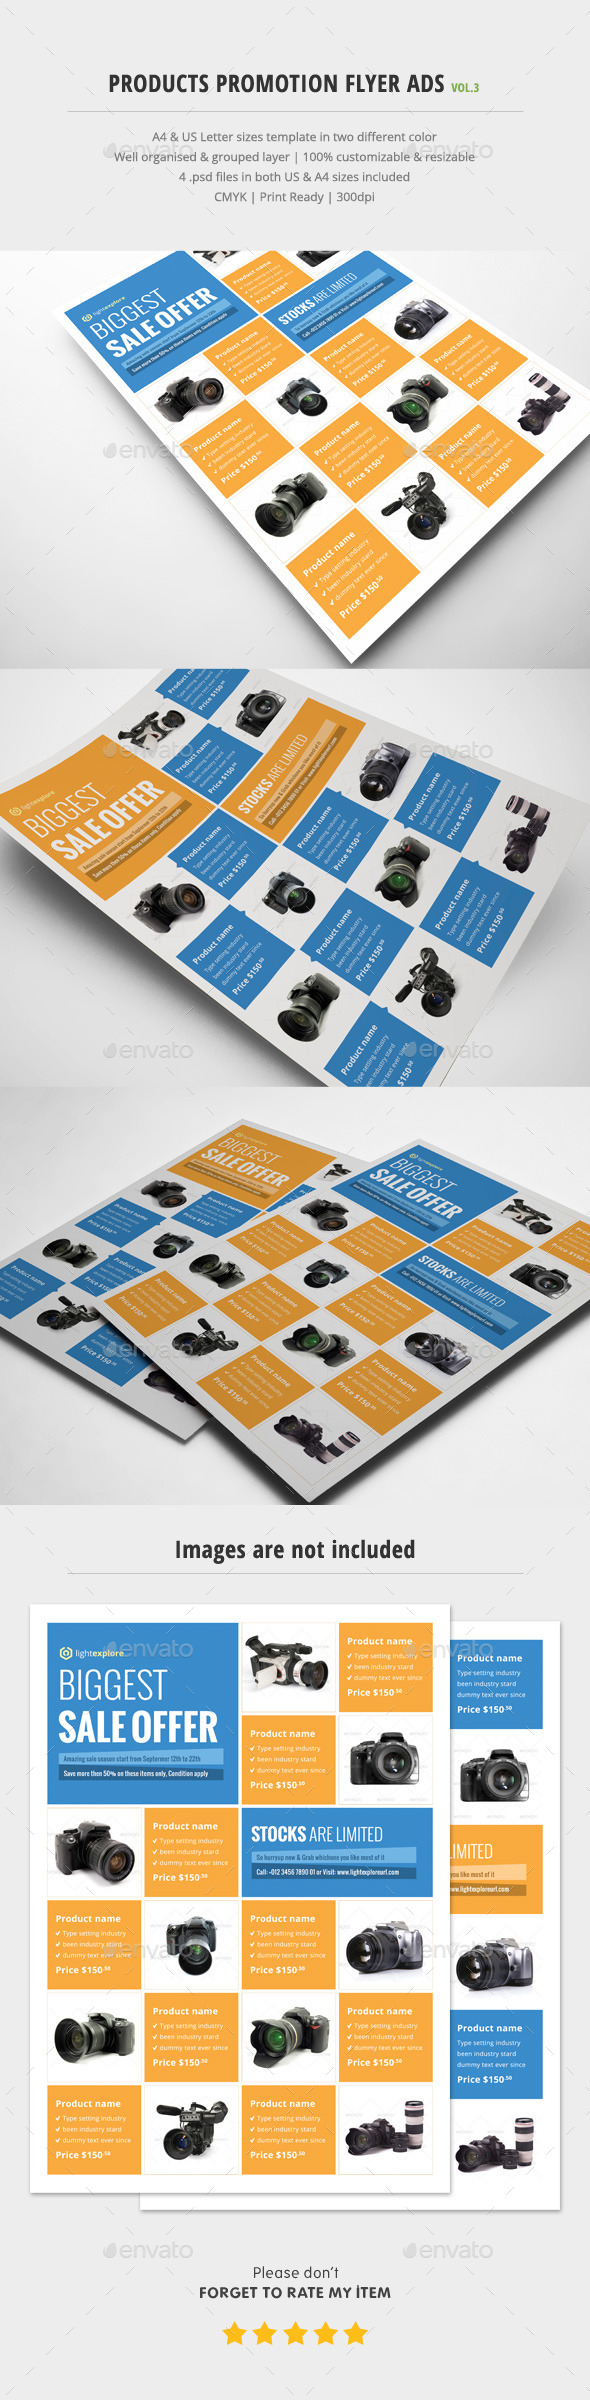 Product Promotion Flyer Ads Vol.3 - Commerce Flyers